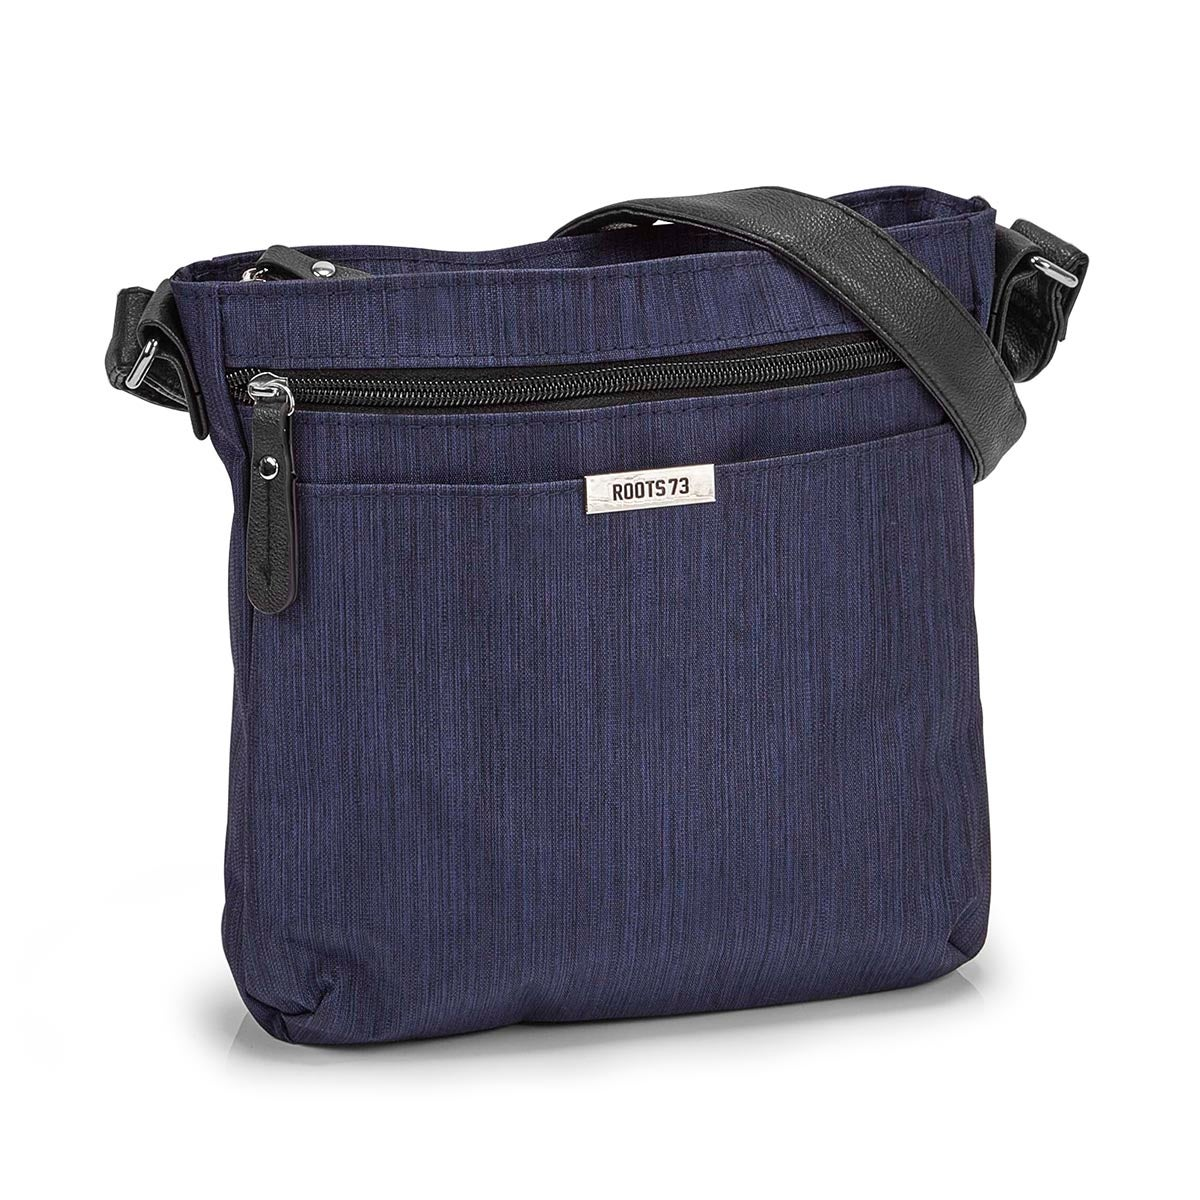 Women's R5240 navy cross body bag